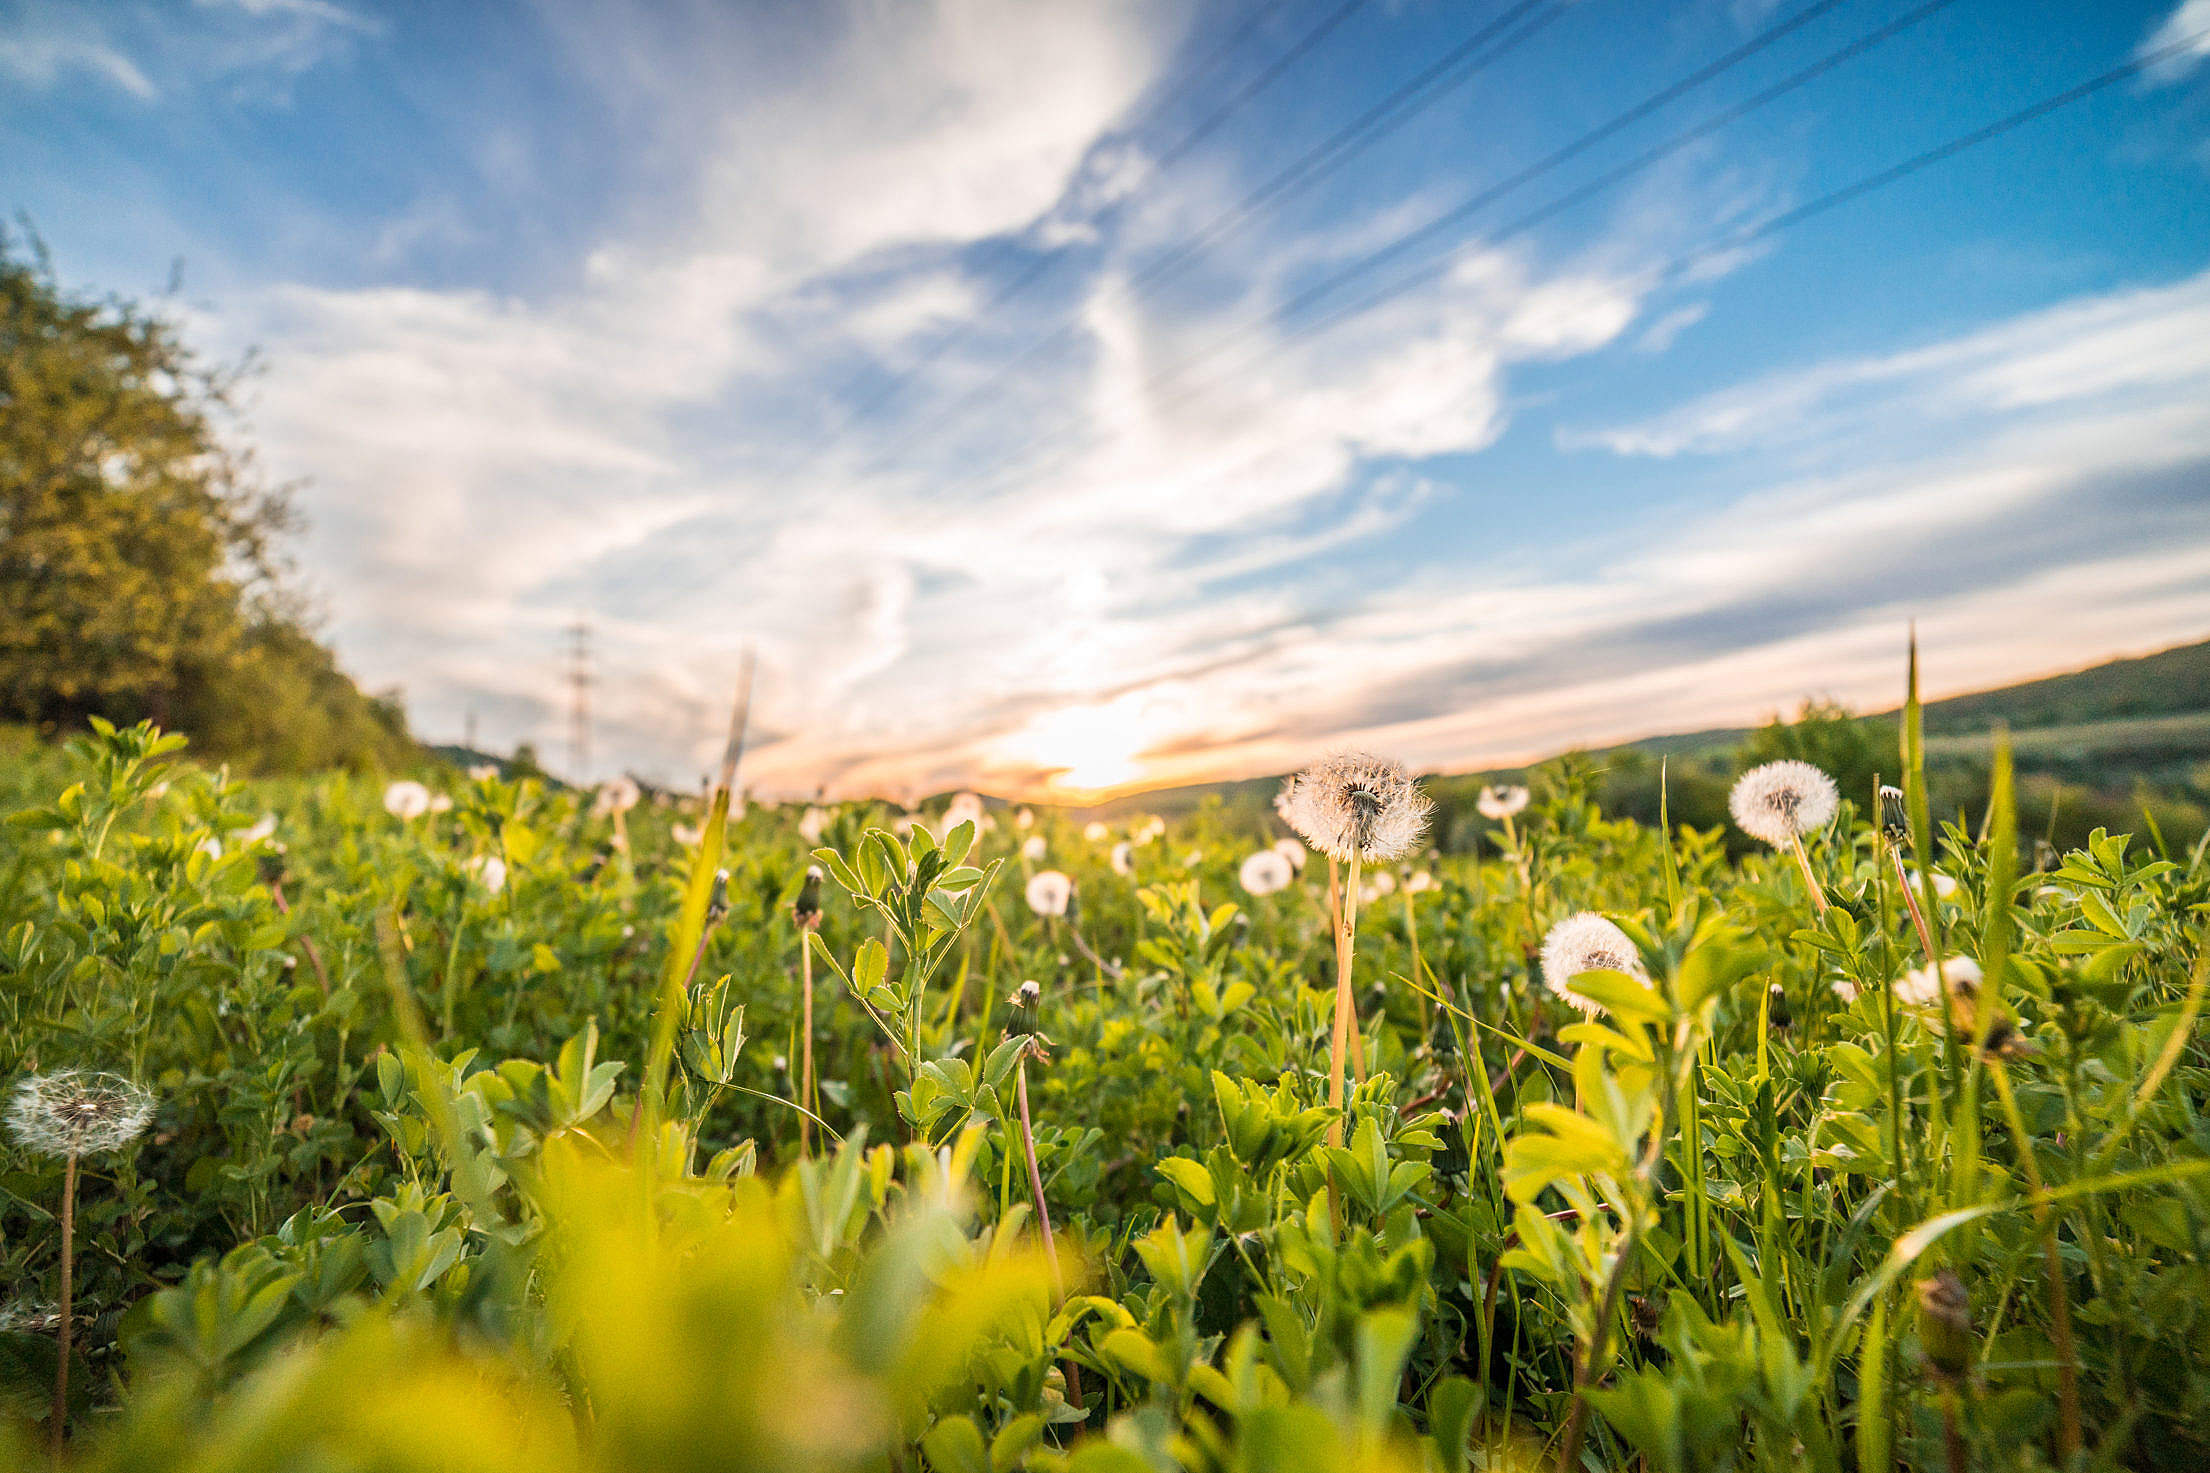 Dandelions/Blowballs in a Field at Sunset Free Stock Photo